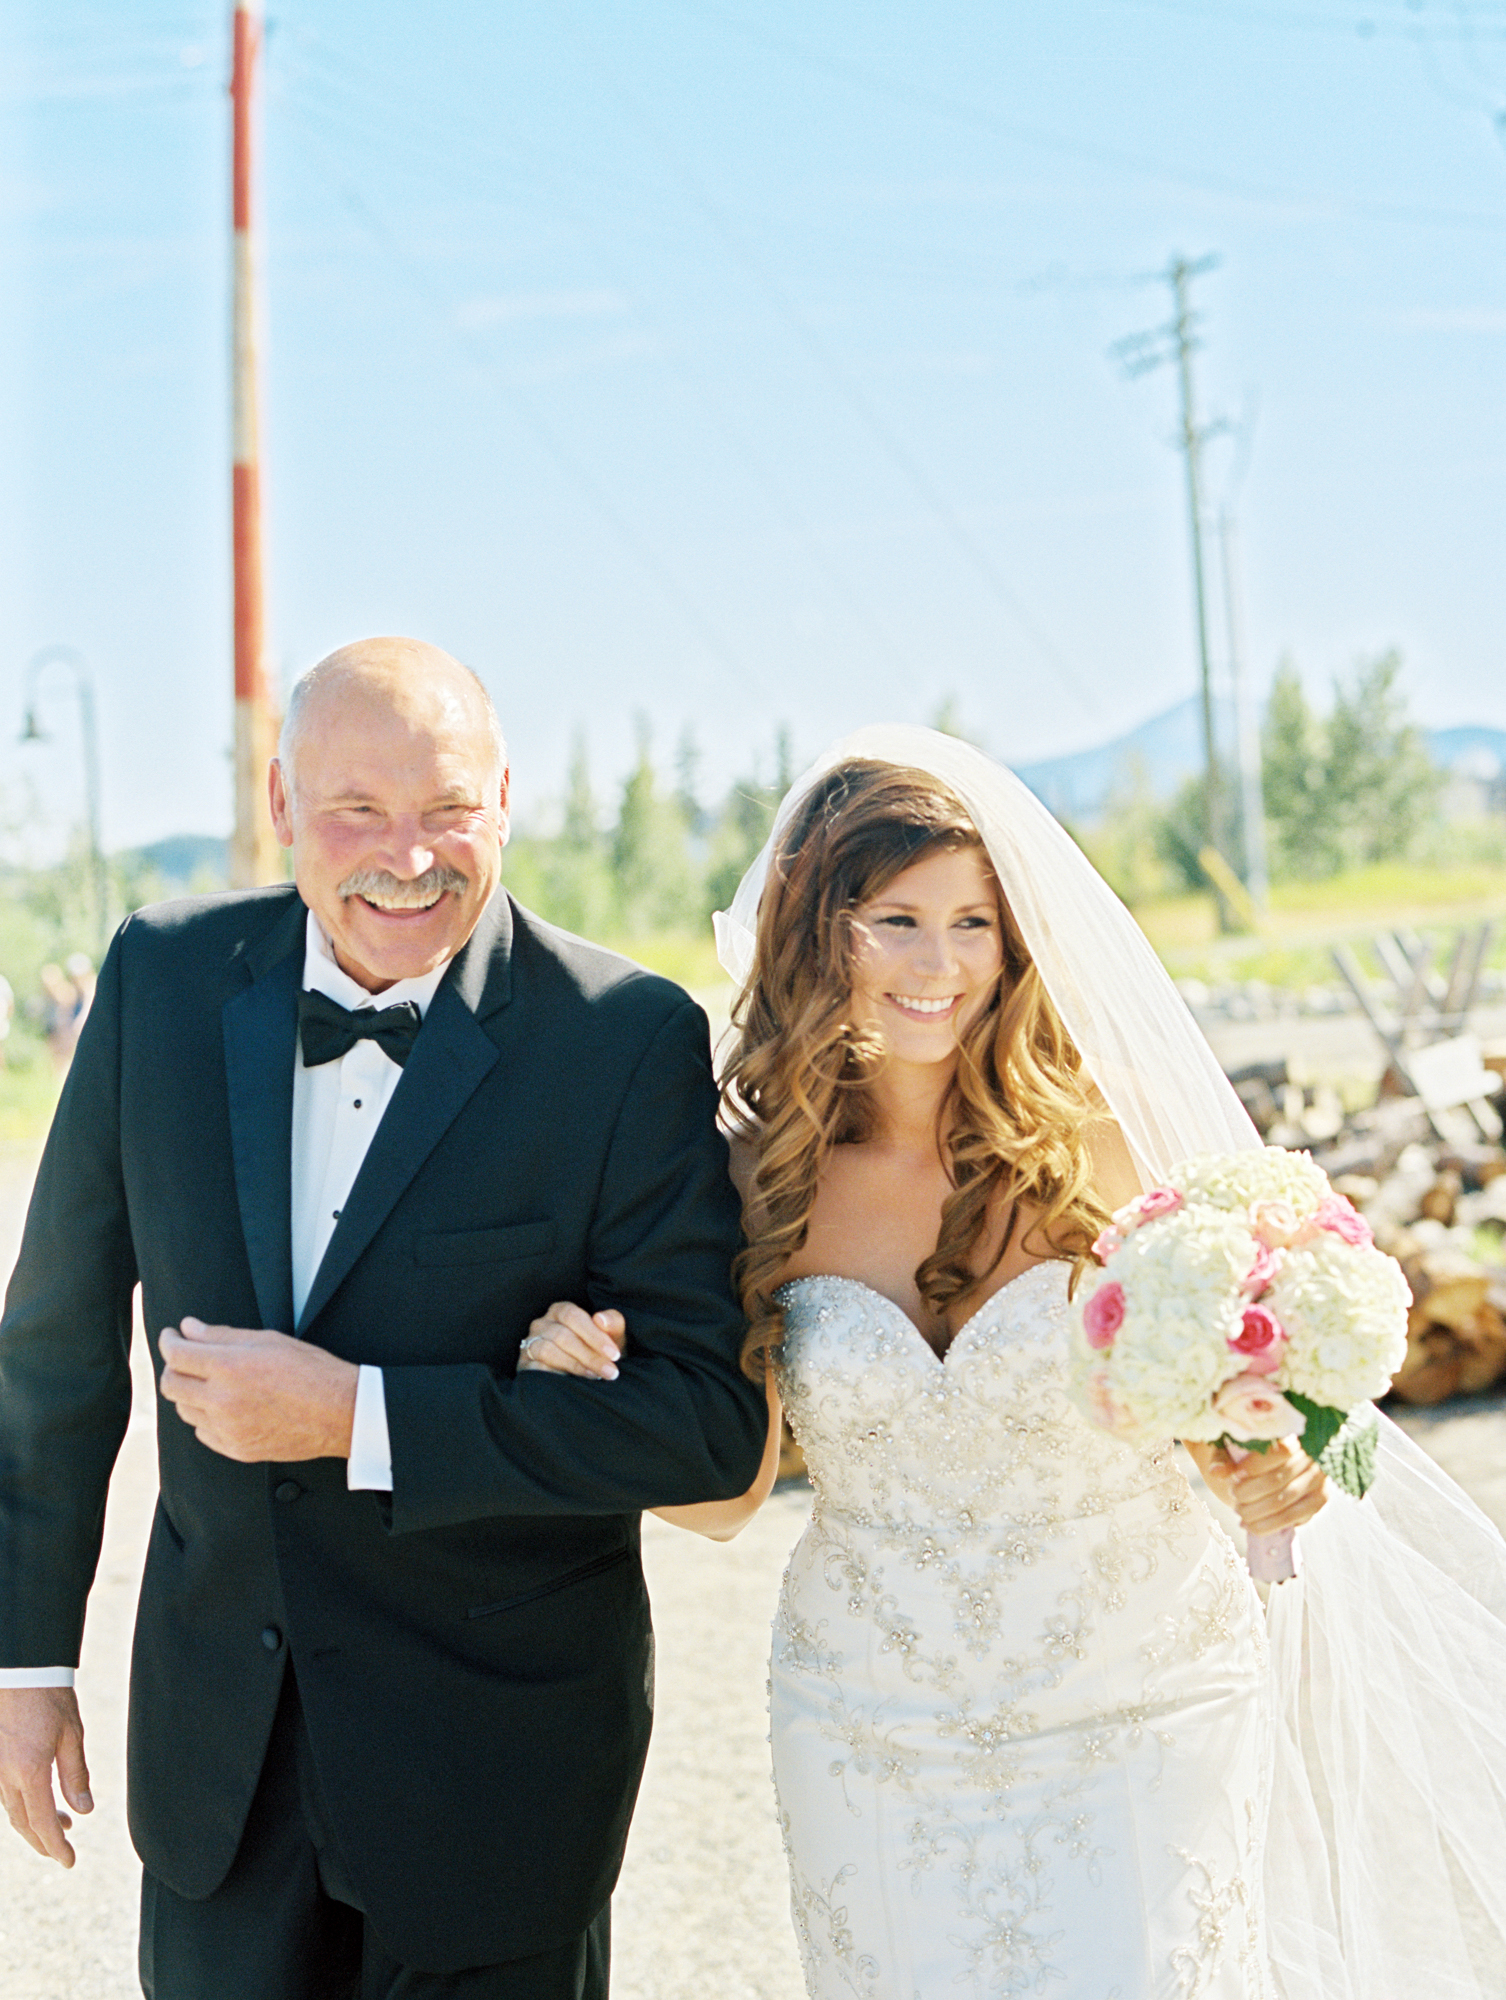 Father of the bride walking down the aisle